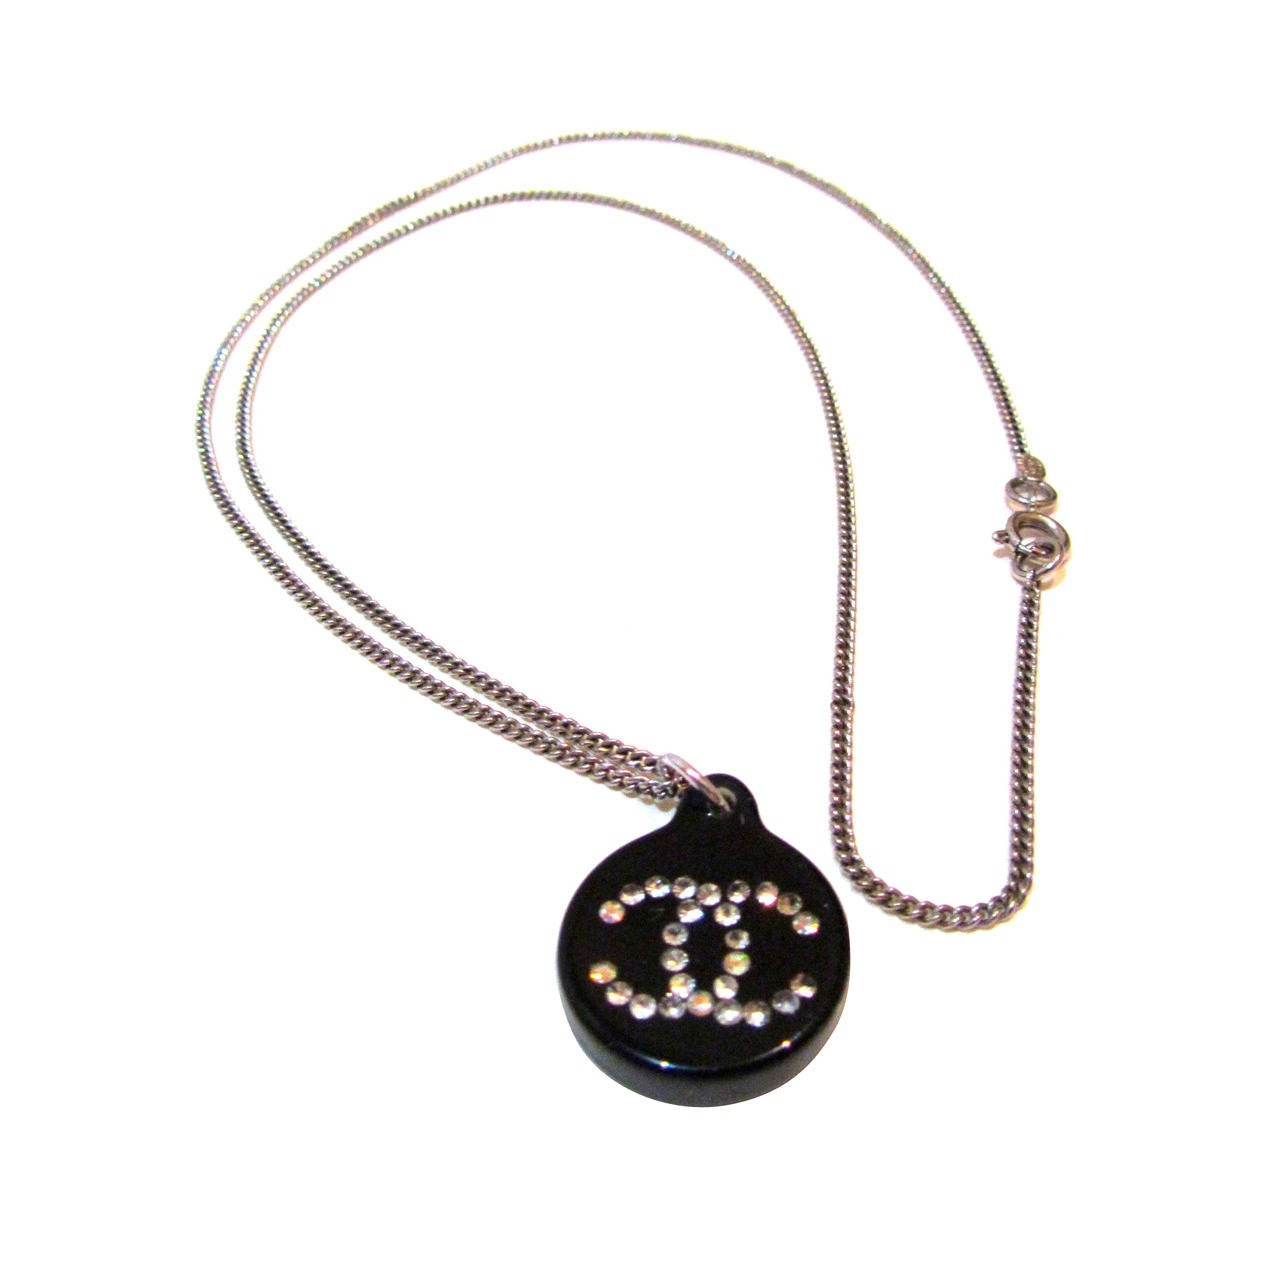 Chanel Necklace - Silver Tone Chain - Black Resin Charm with Crystal CC Inlay For Sale